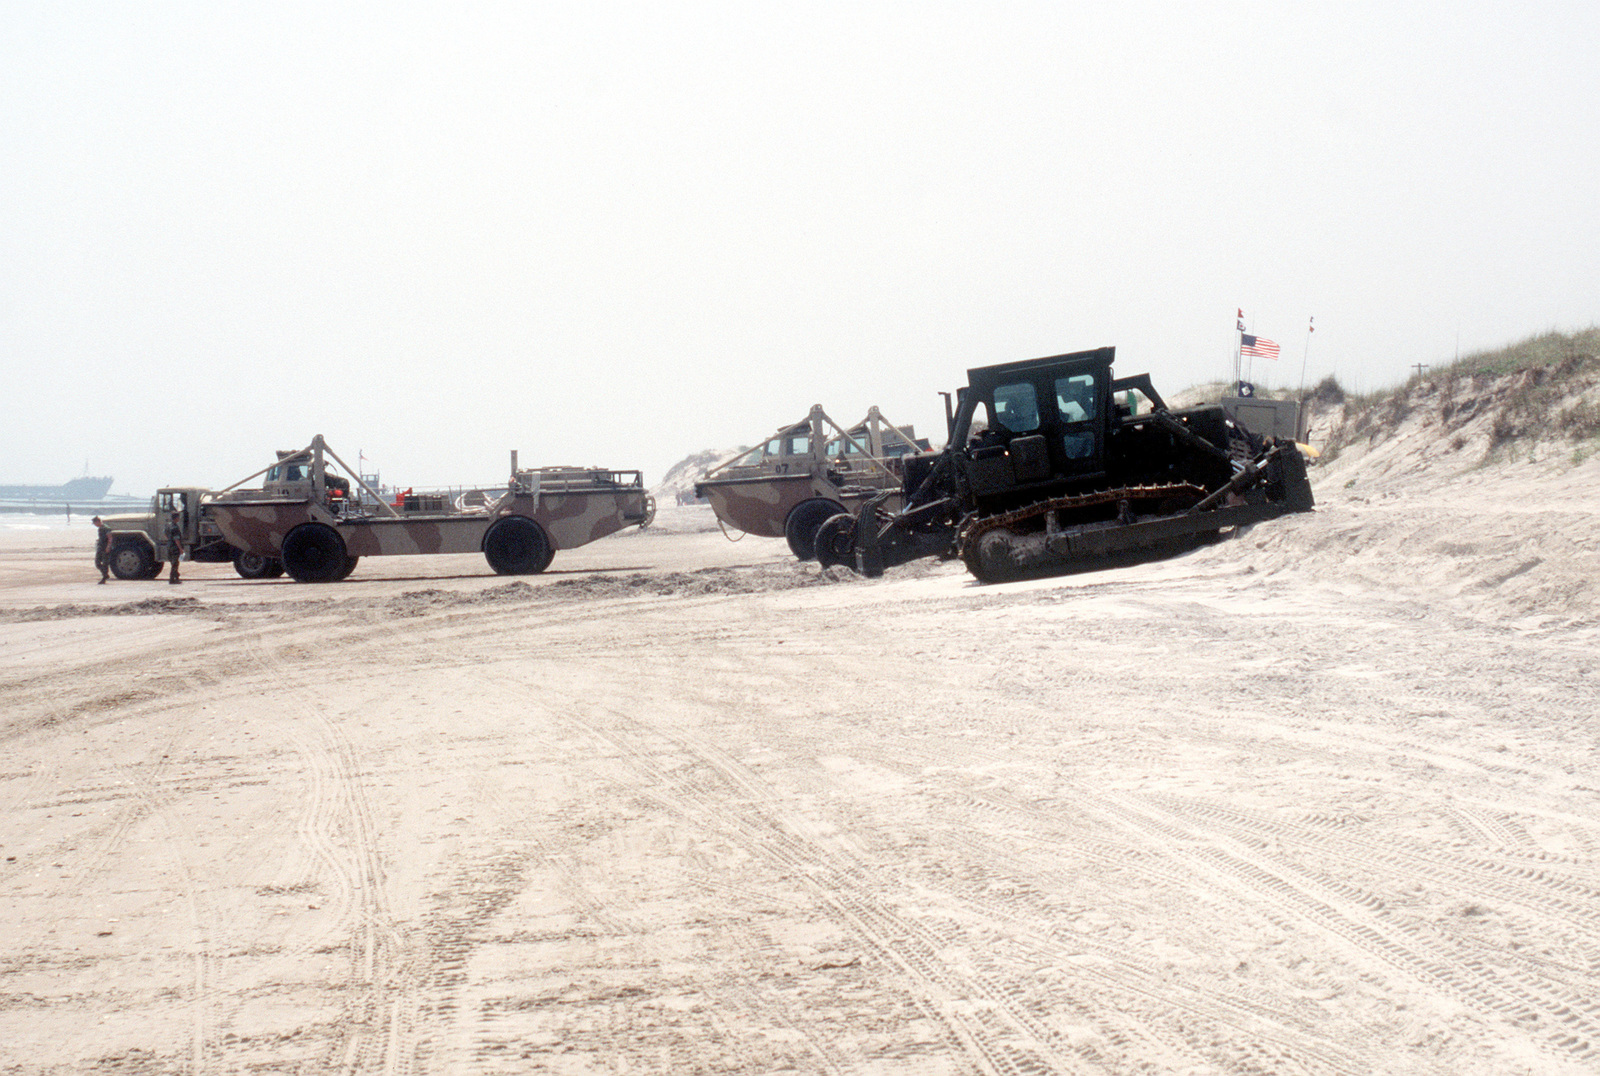 LARC-5 amphibious cargo carriers and other equipment are positioned